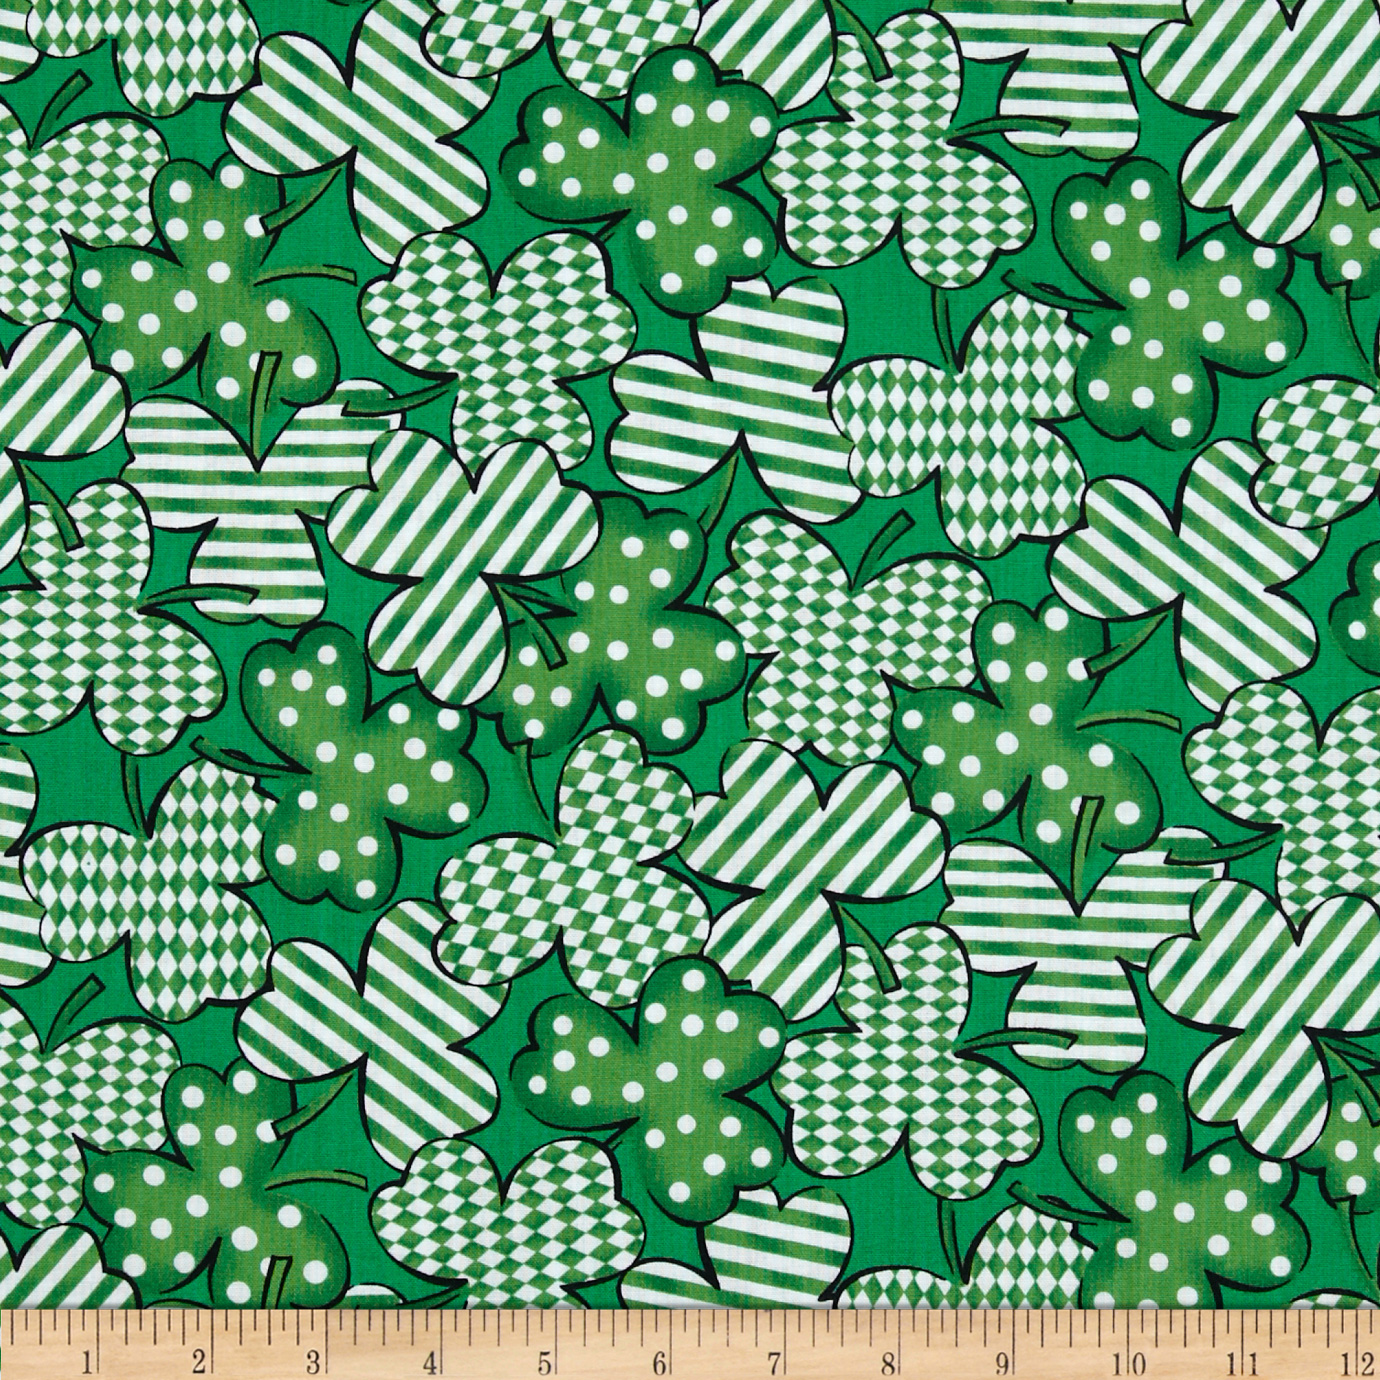 Kiss Me I'm Irish Geometric Clusters Green Fabric